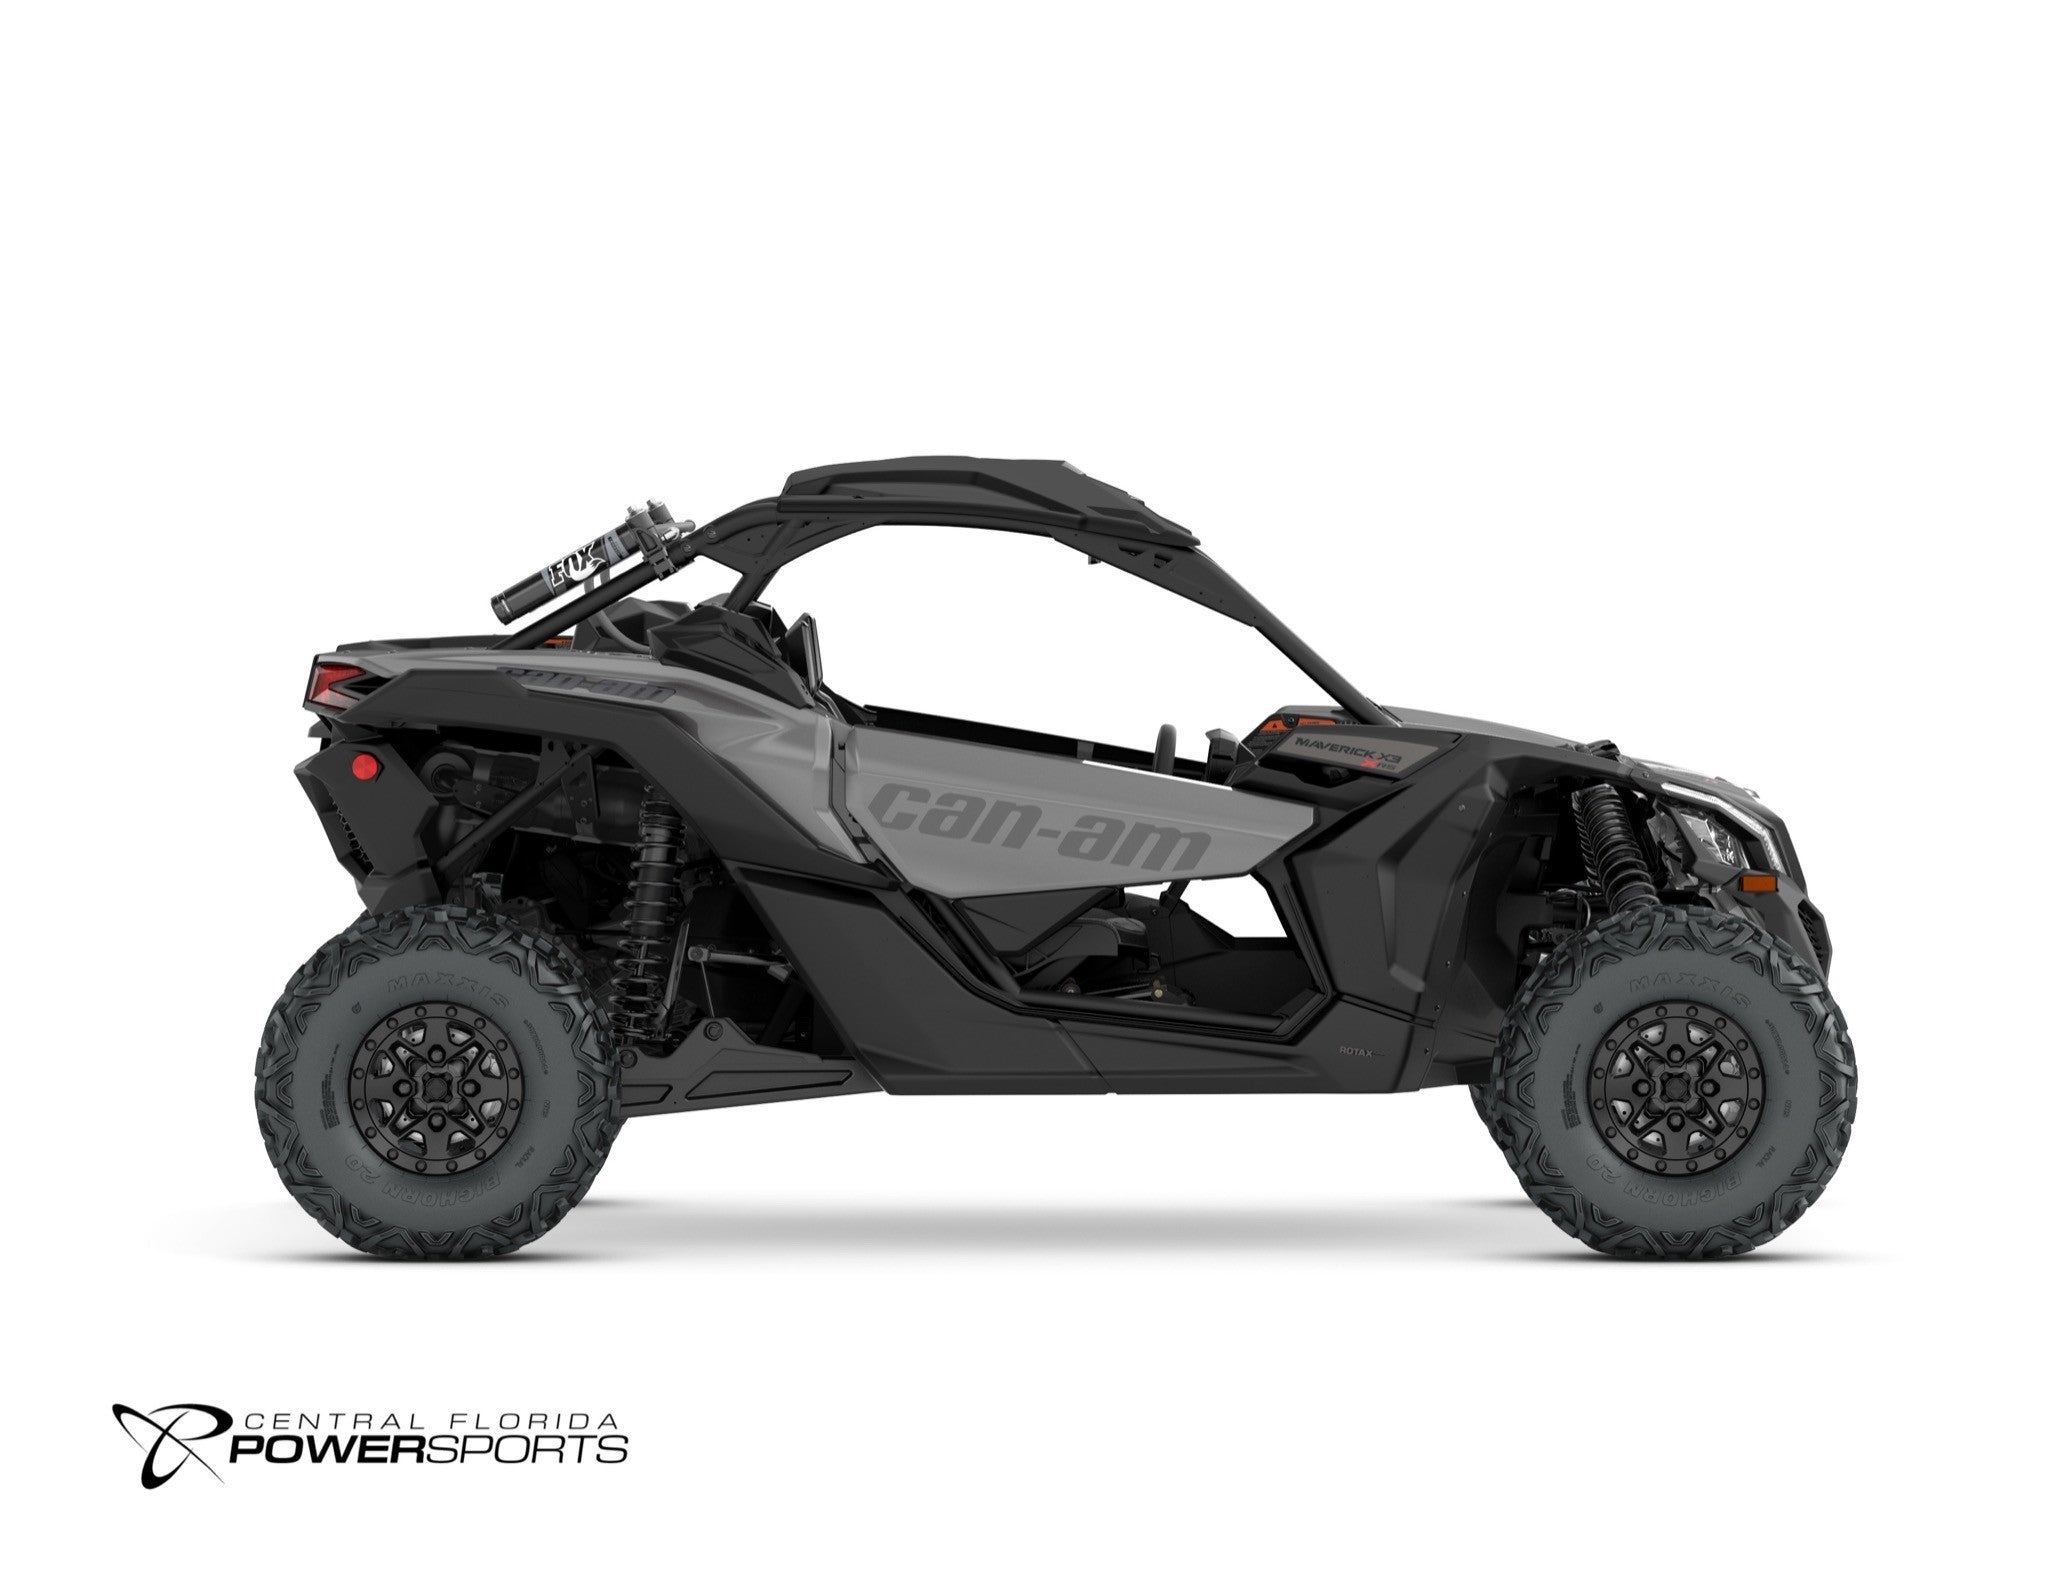 2018 canam maverick x3 x rs turbo r side by side sxs kissimmee dealer central florida powersports. Black Bedroom Furniture Sets. Home Design Ideas